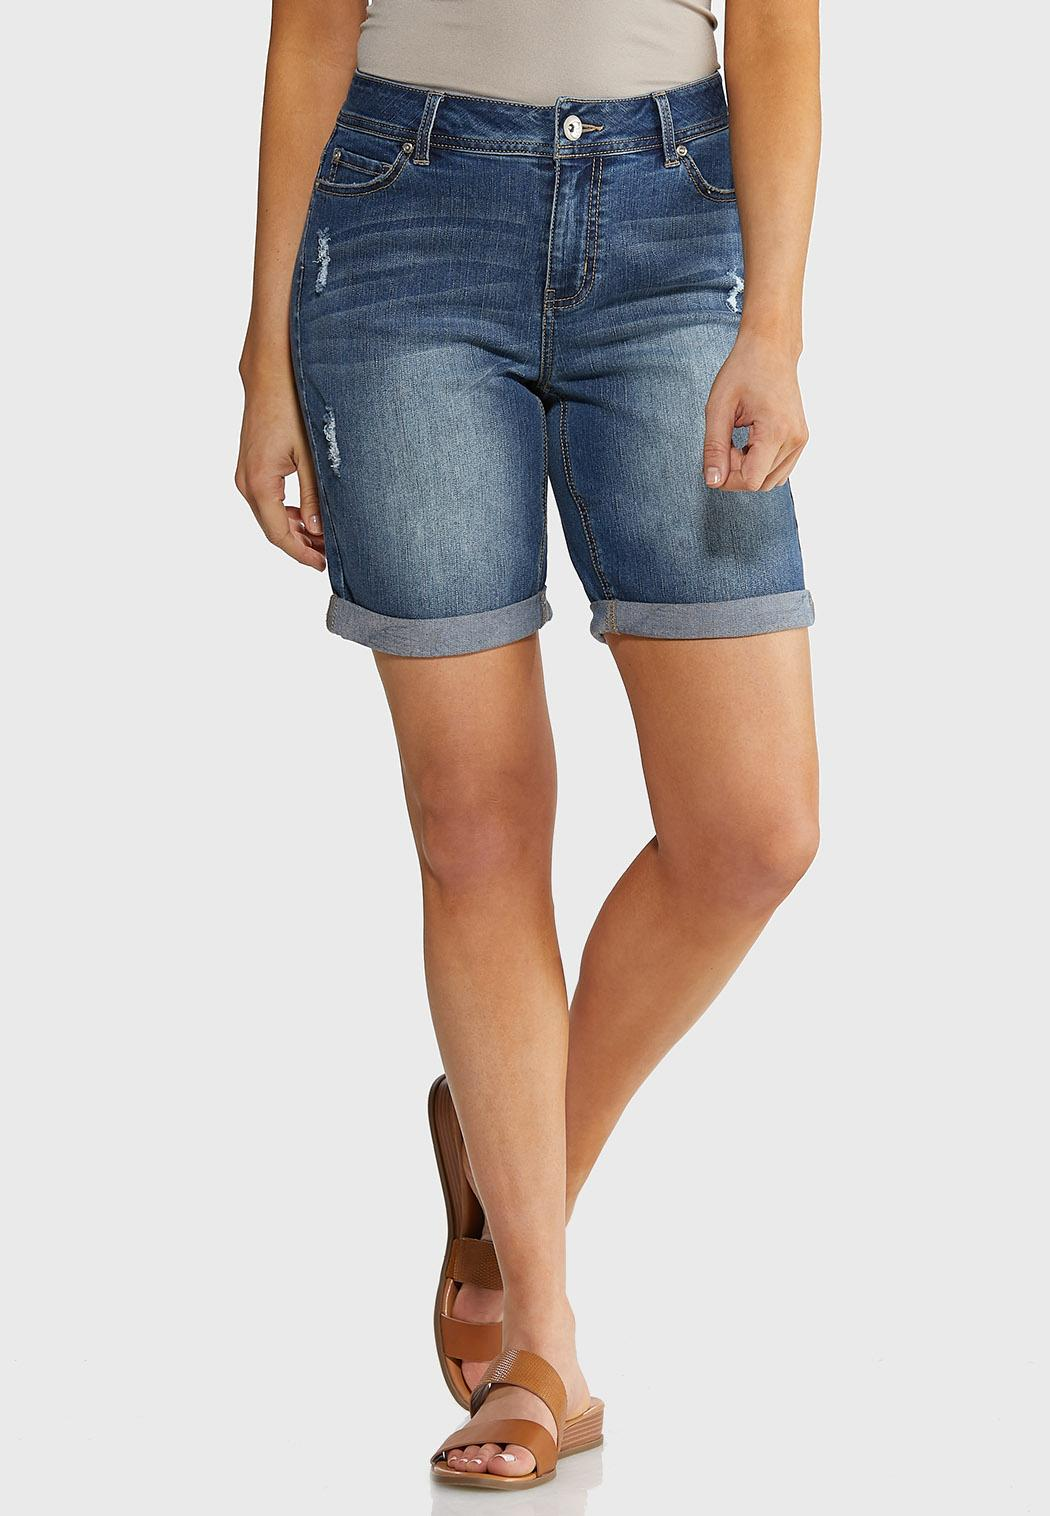 Image result for bermuda shorts